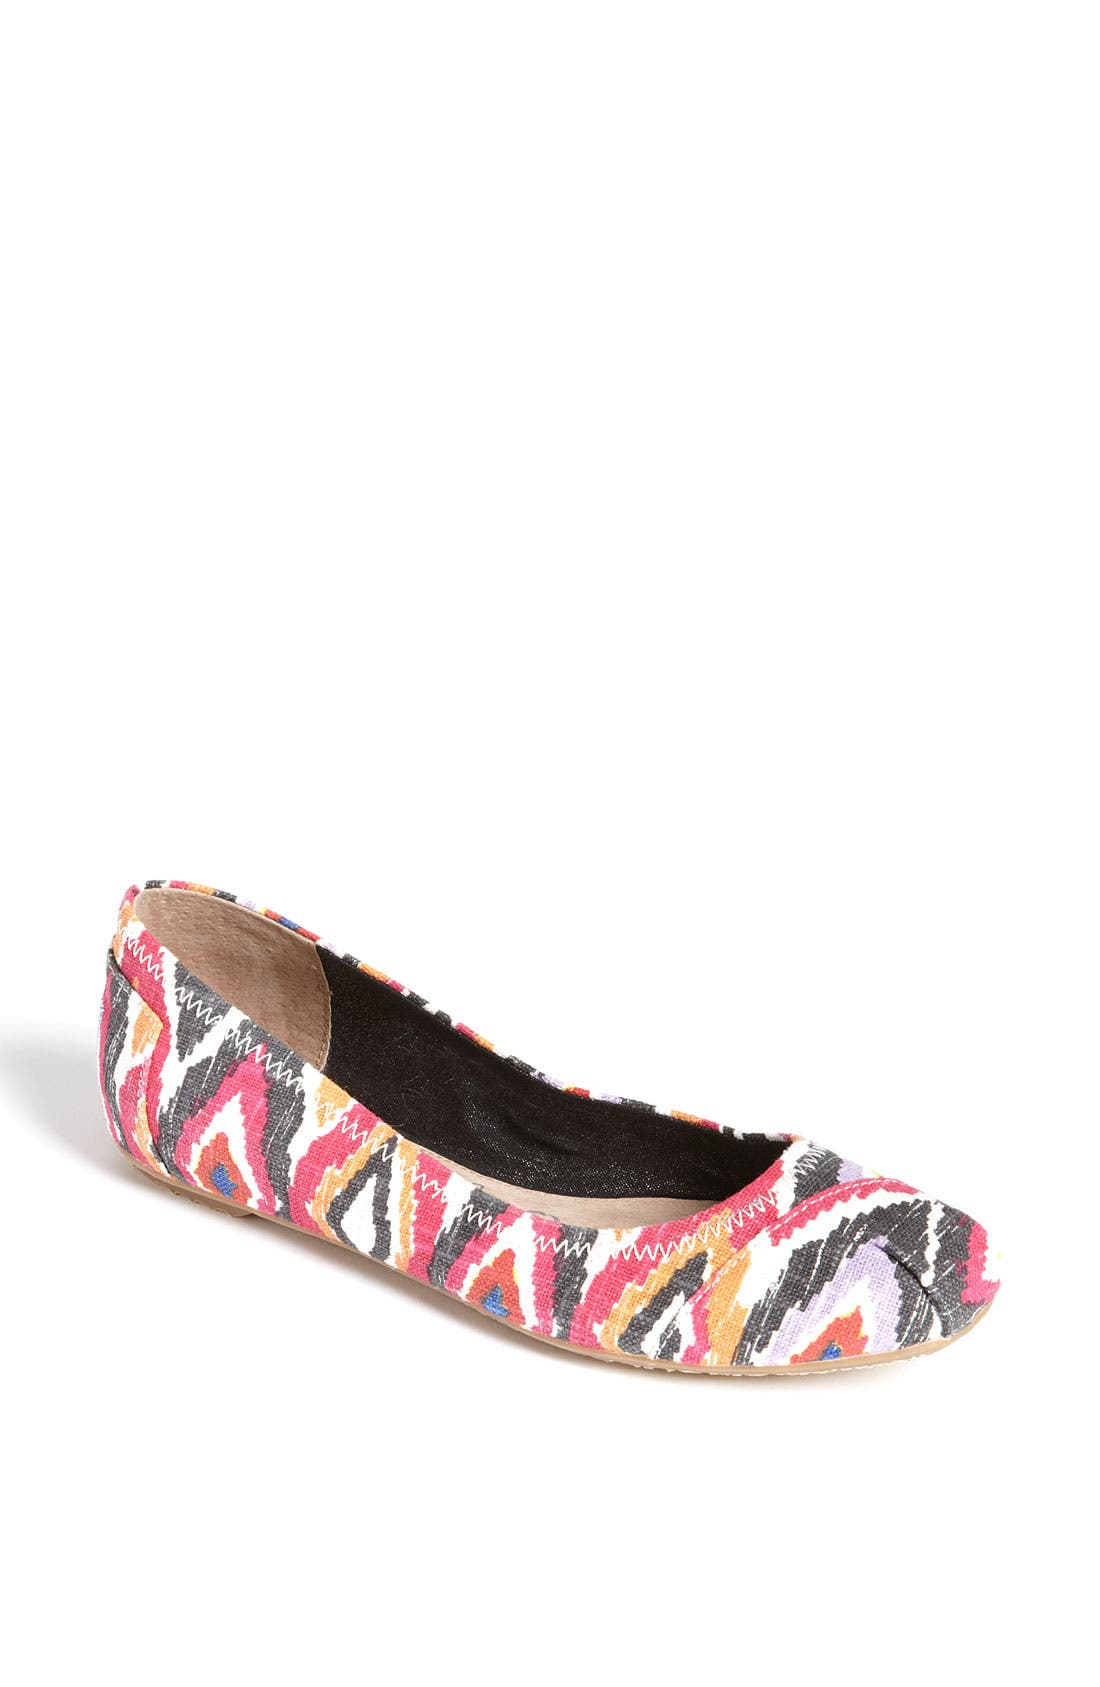 Alternate Image 1 Selected - TOMS 'Gabriella' Flat